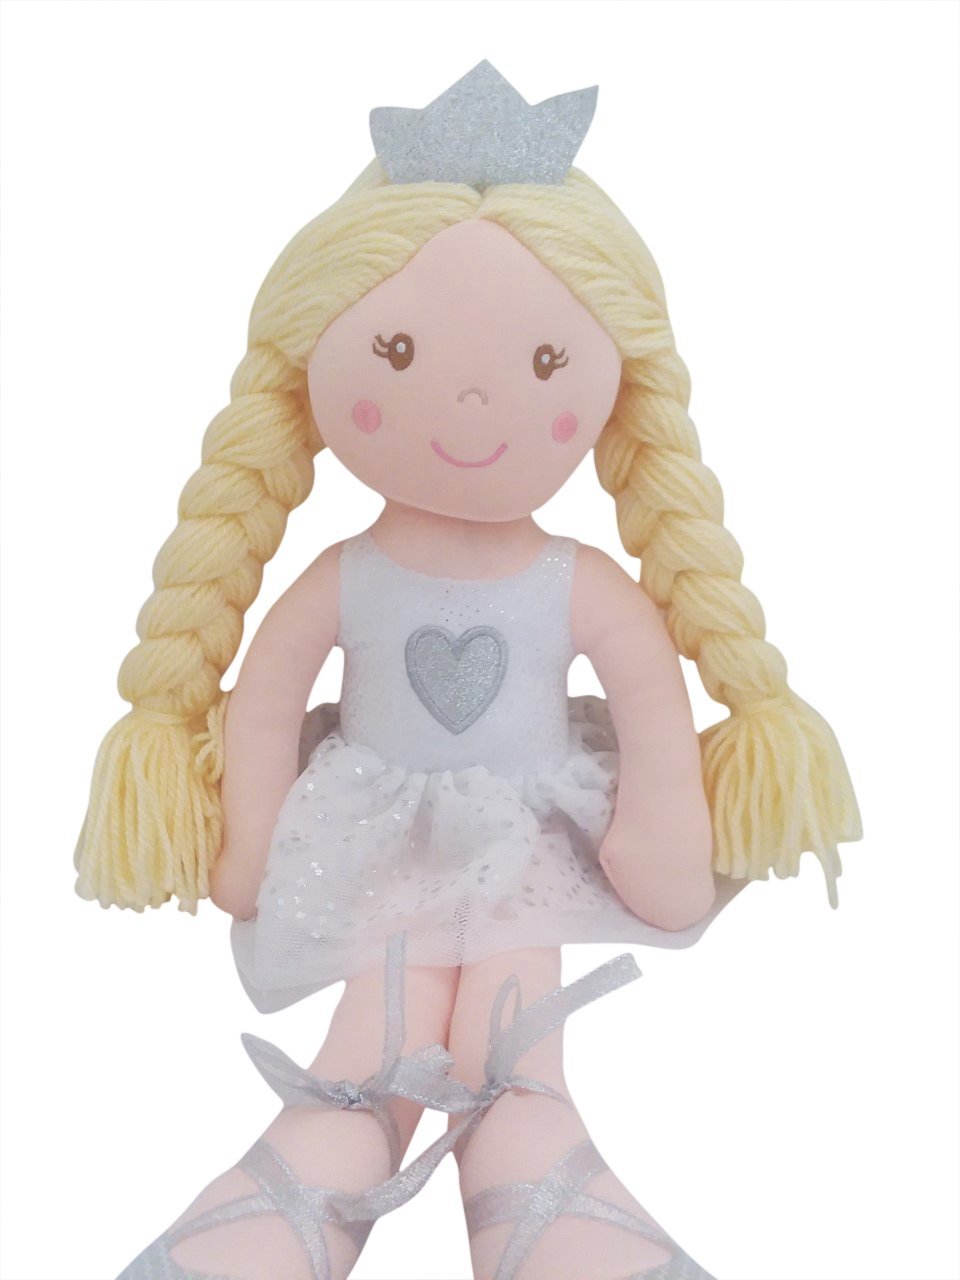 Cammy the Princess Soft Baby Doll Doll Odd Peanut